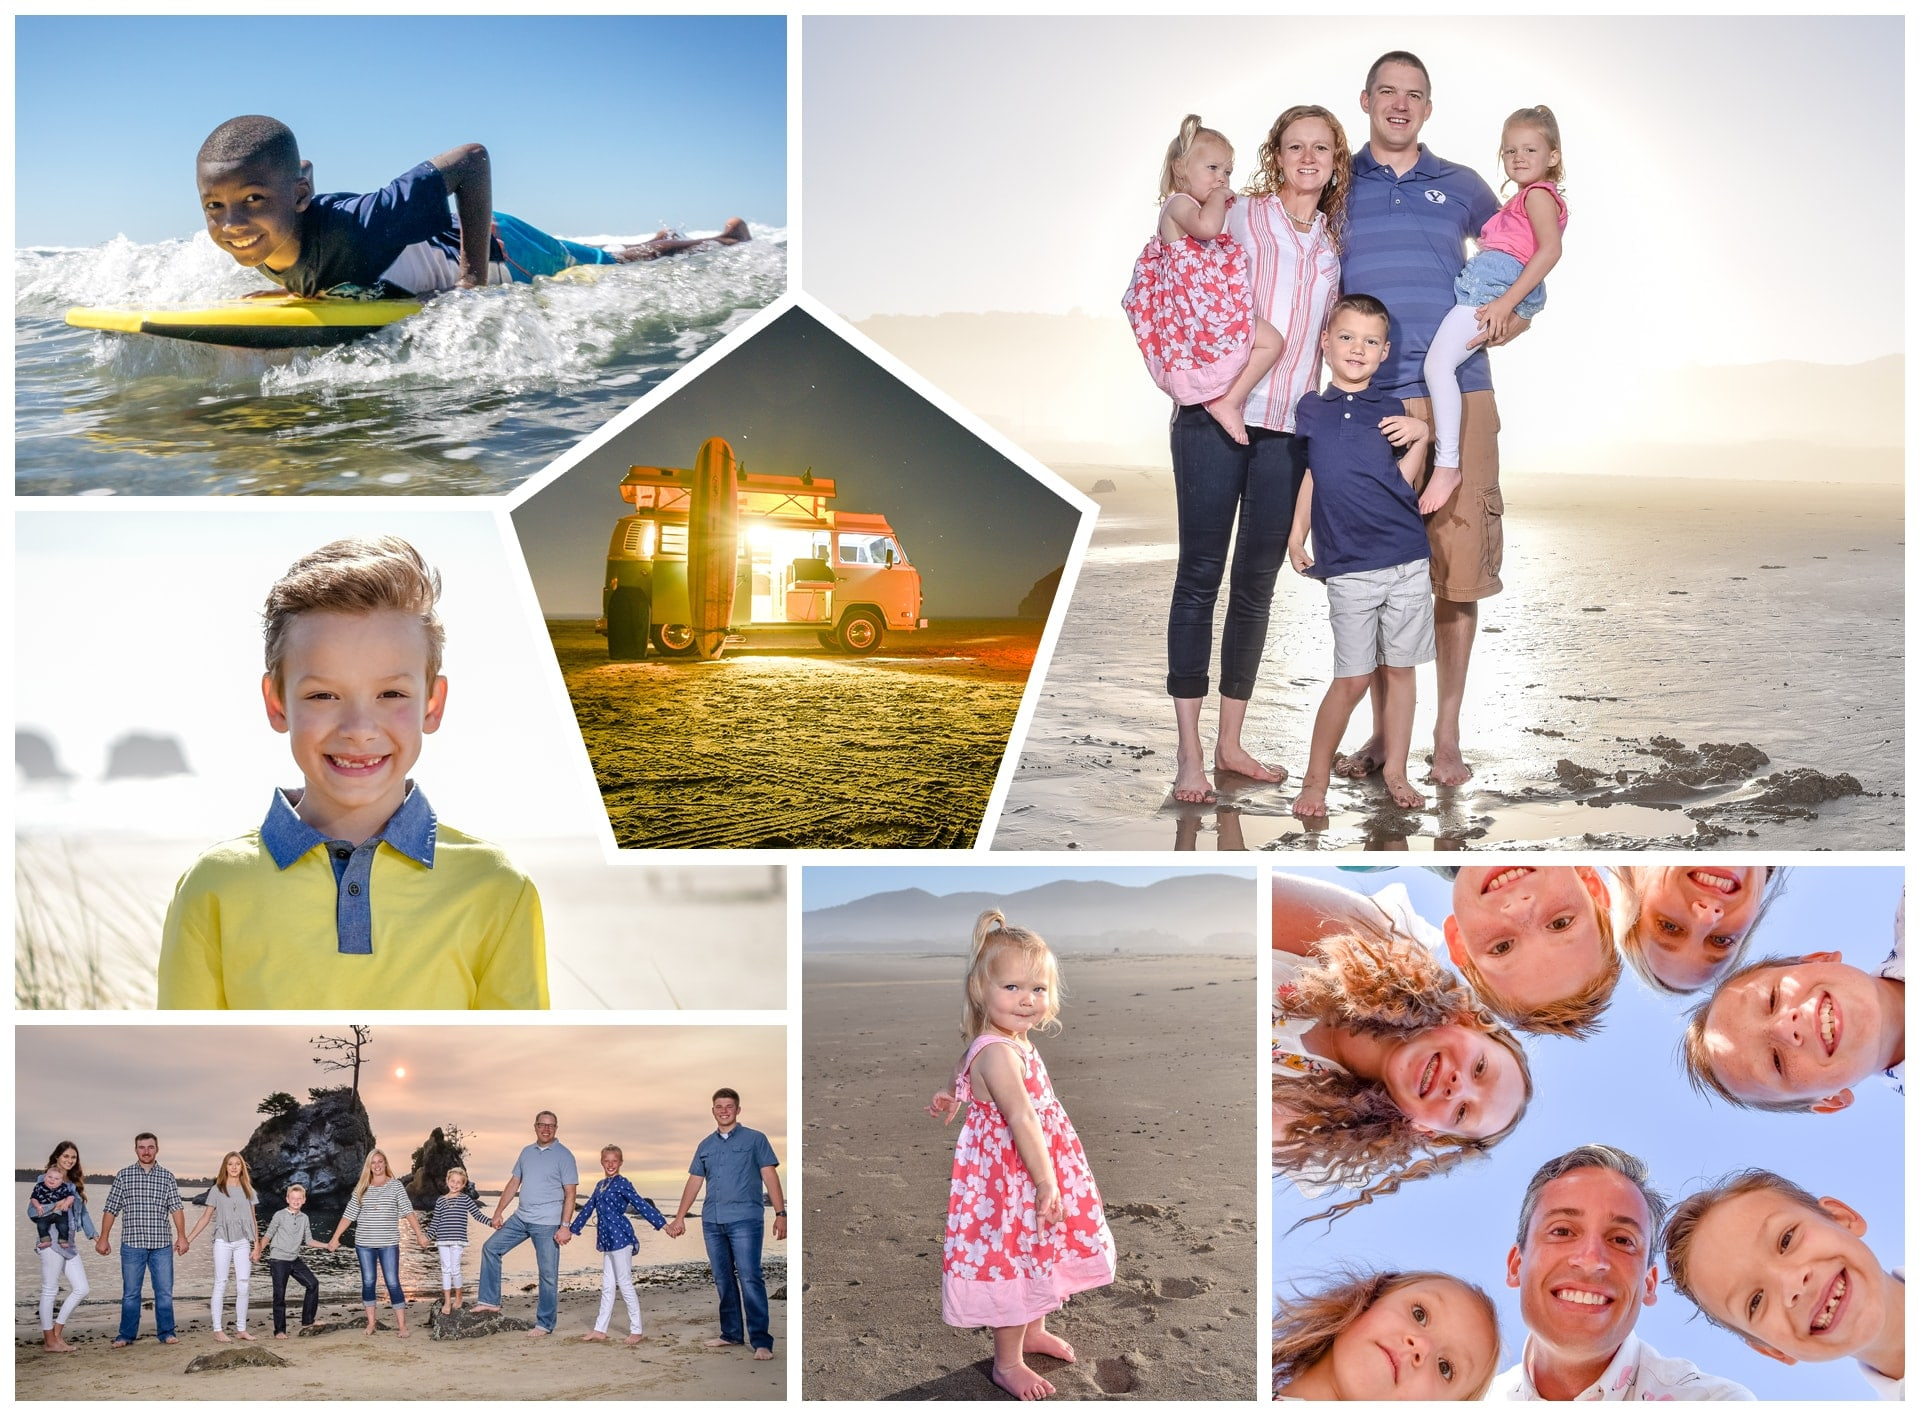 Collage of photos of Richland dentists and their families having fun on the beach